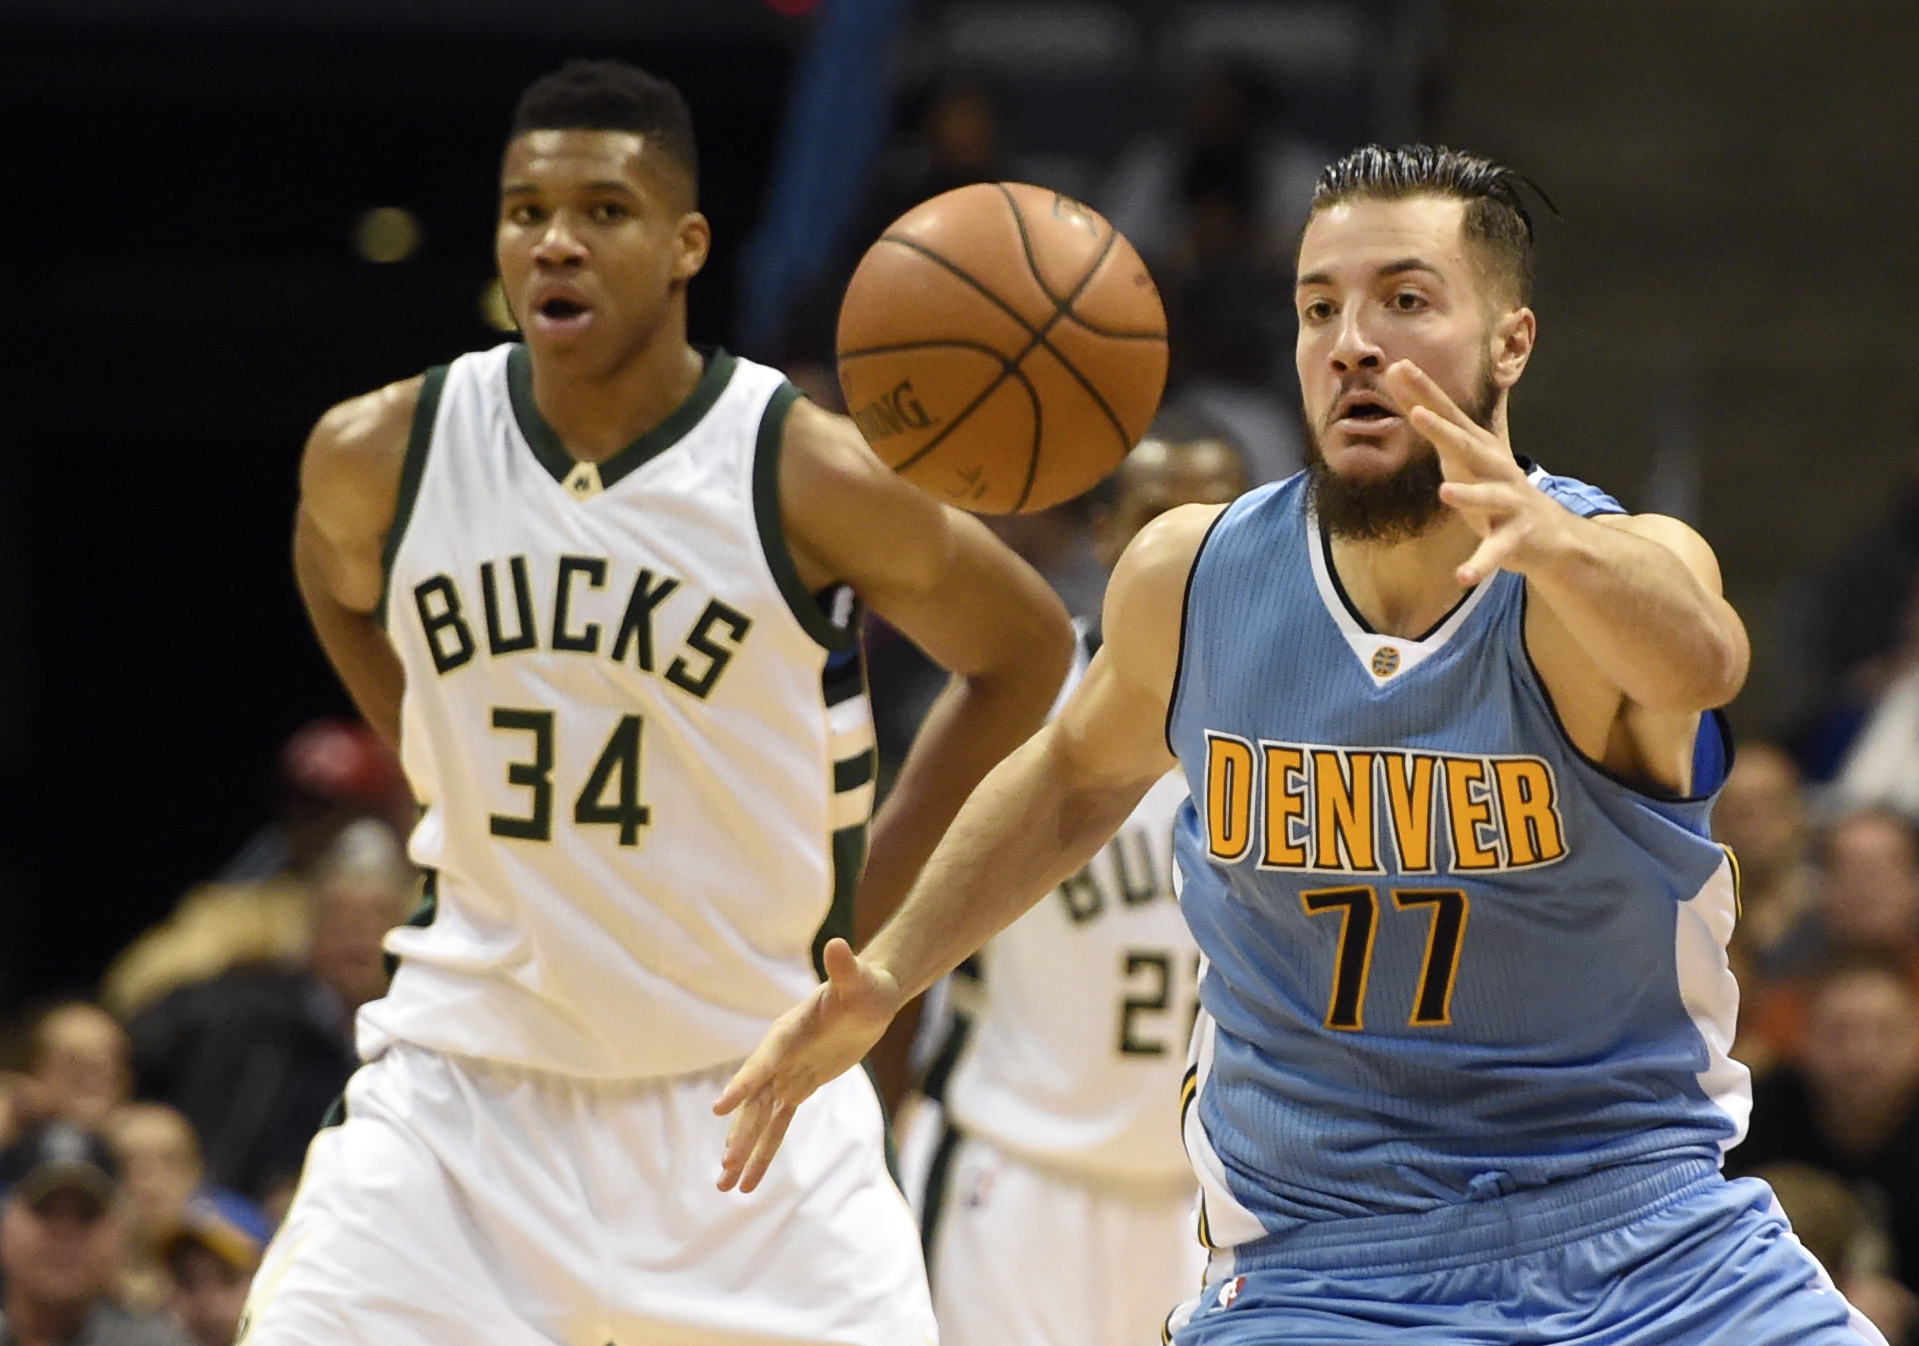 Nov 30, 2015; Milwaukee, WI, USA;  Denver Nuggets center Joffrey Lauvergne (77) grabs a loose ball in front of Milwaukee Bucks forward Giannis Antetokounmpo (34) in the third quarter at BMO Harris Bradley Center. Mandatory Credit: Benny Sieu-USA TODAY Sports